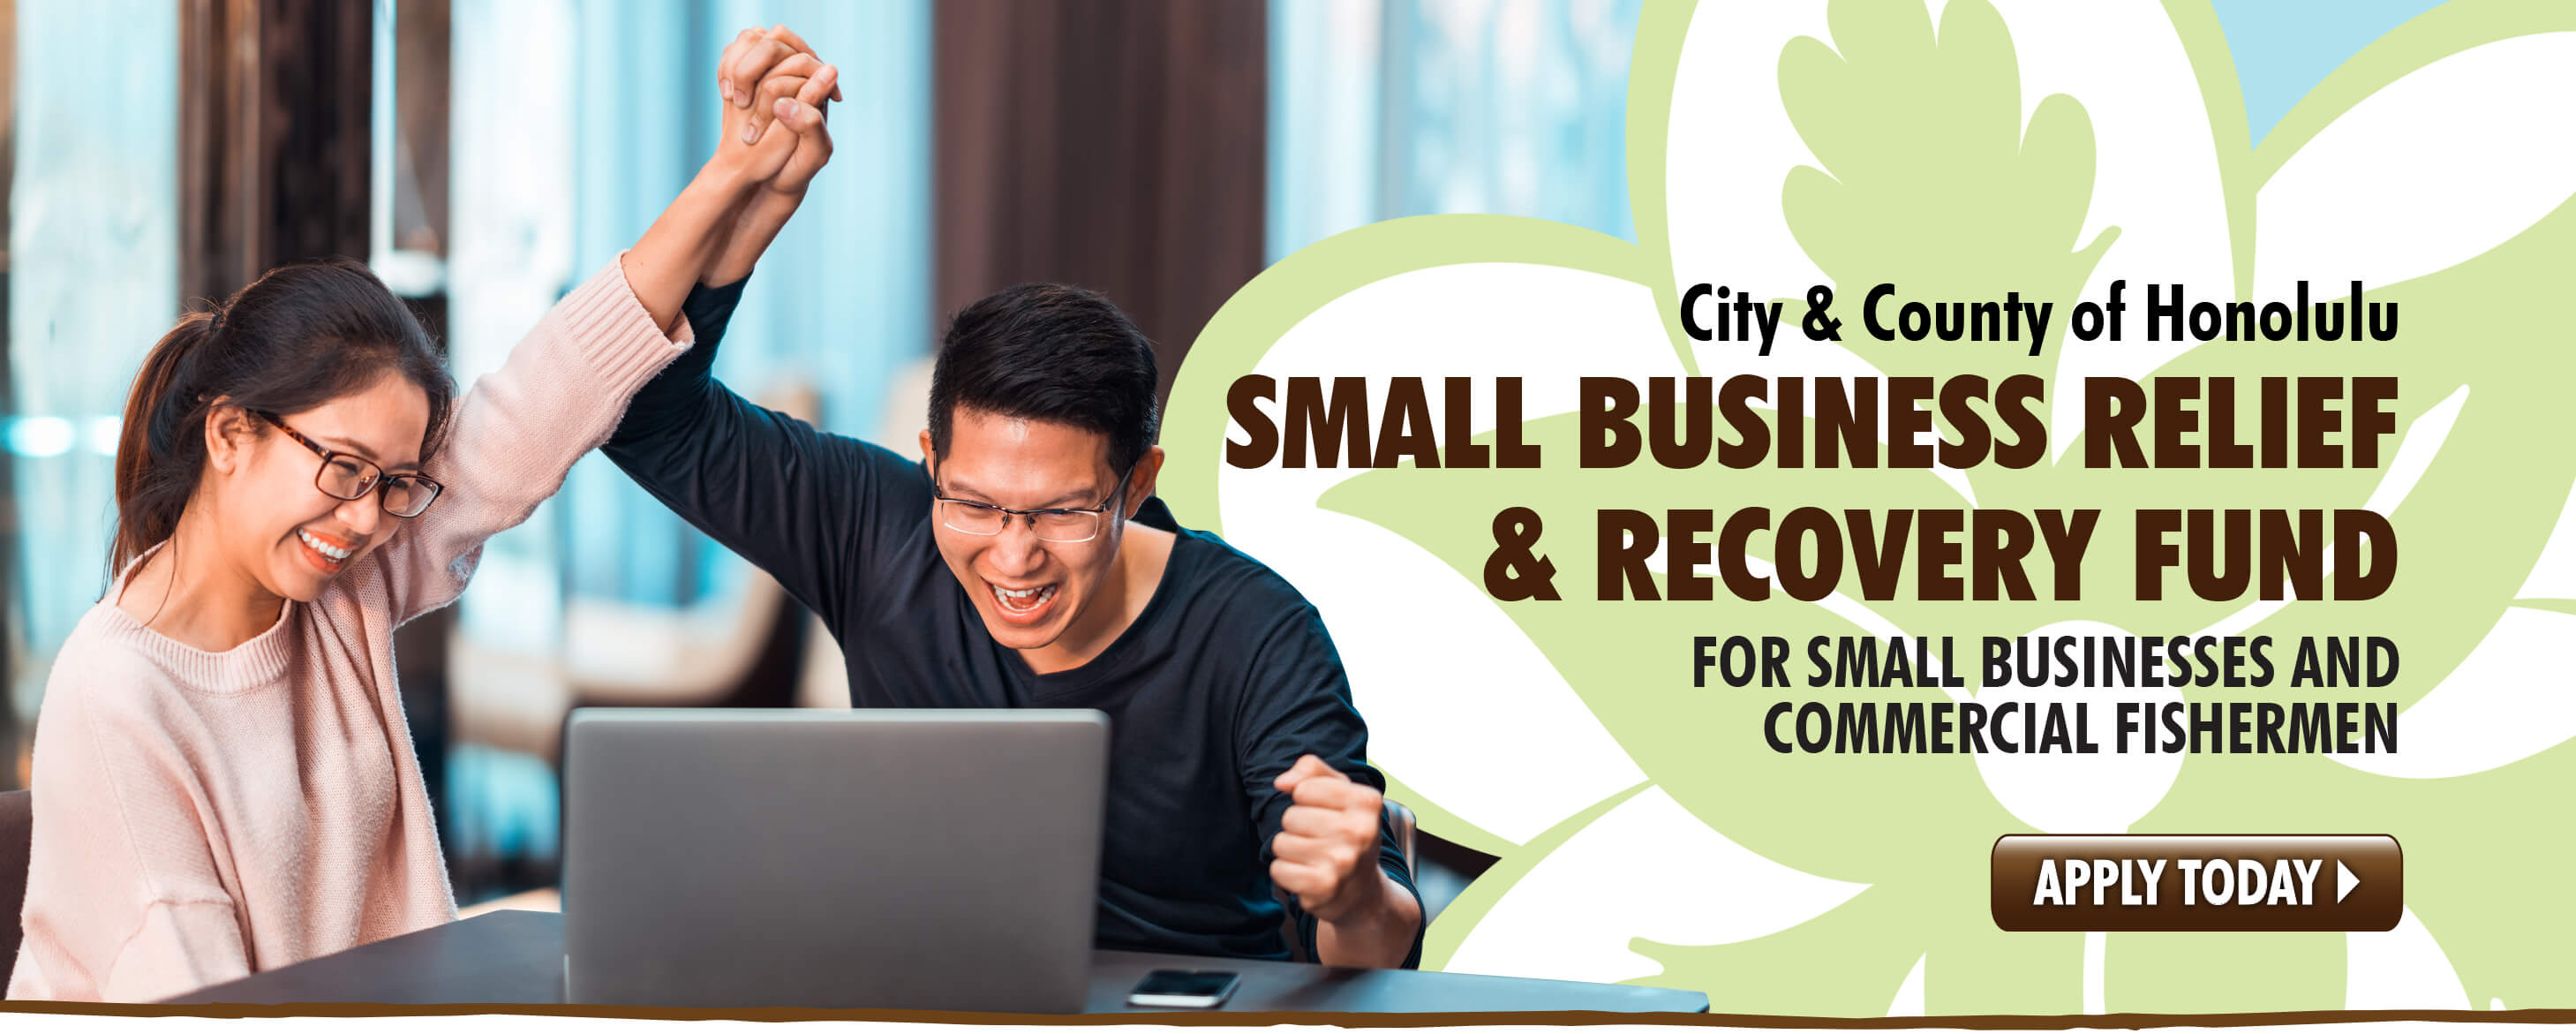 City & County of Honolulu Small Business Relief & Recovery Fund